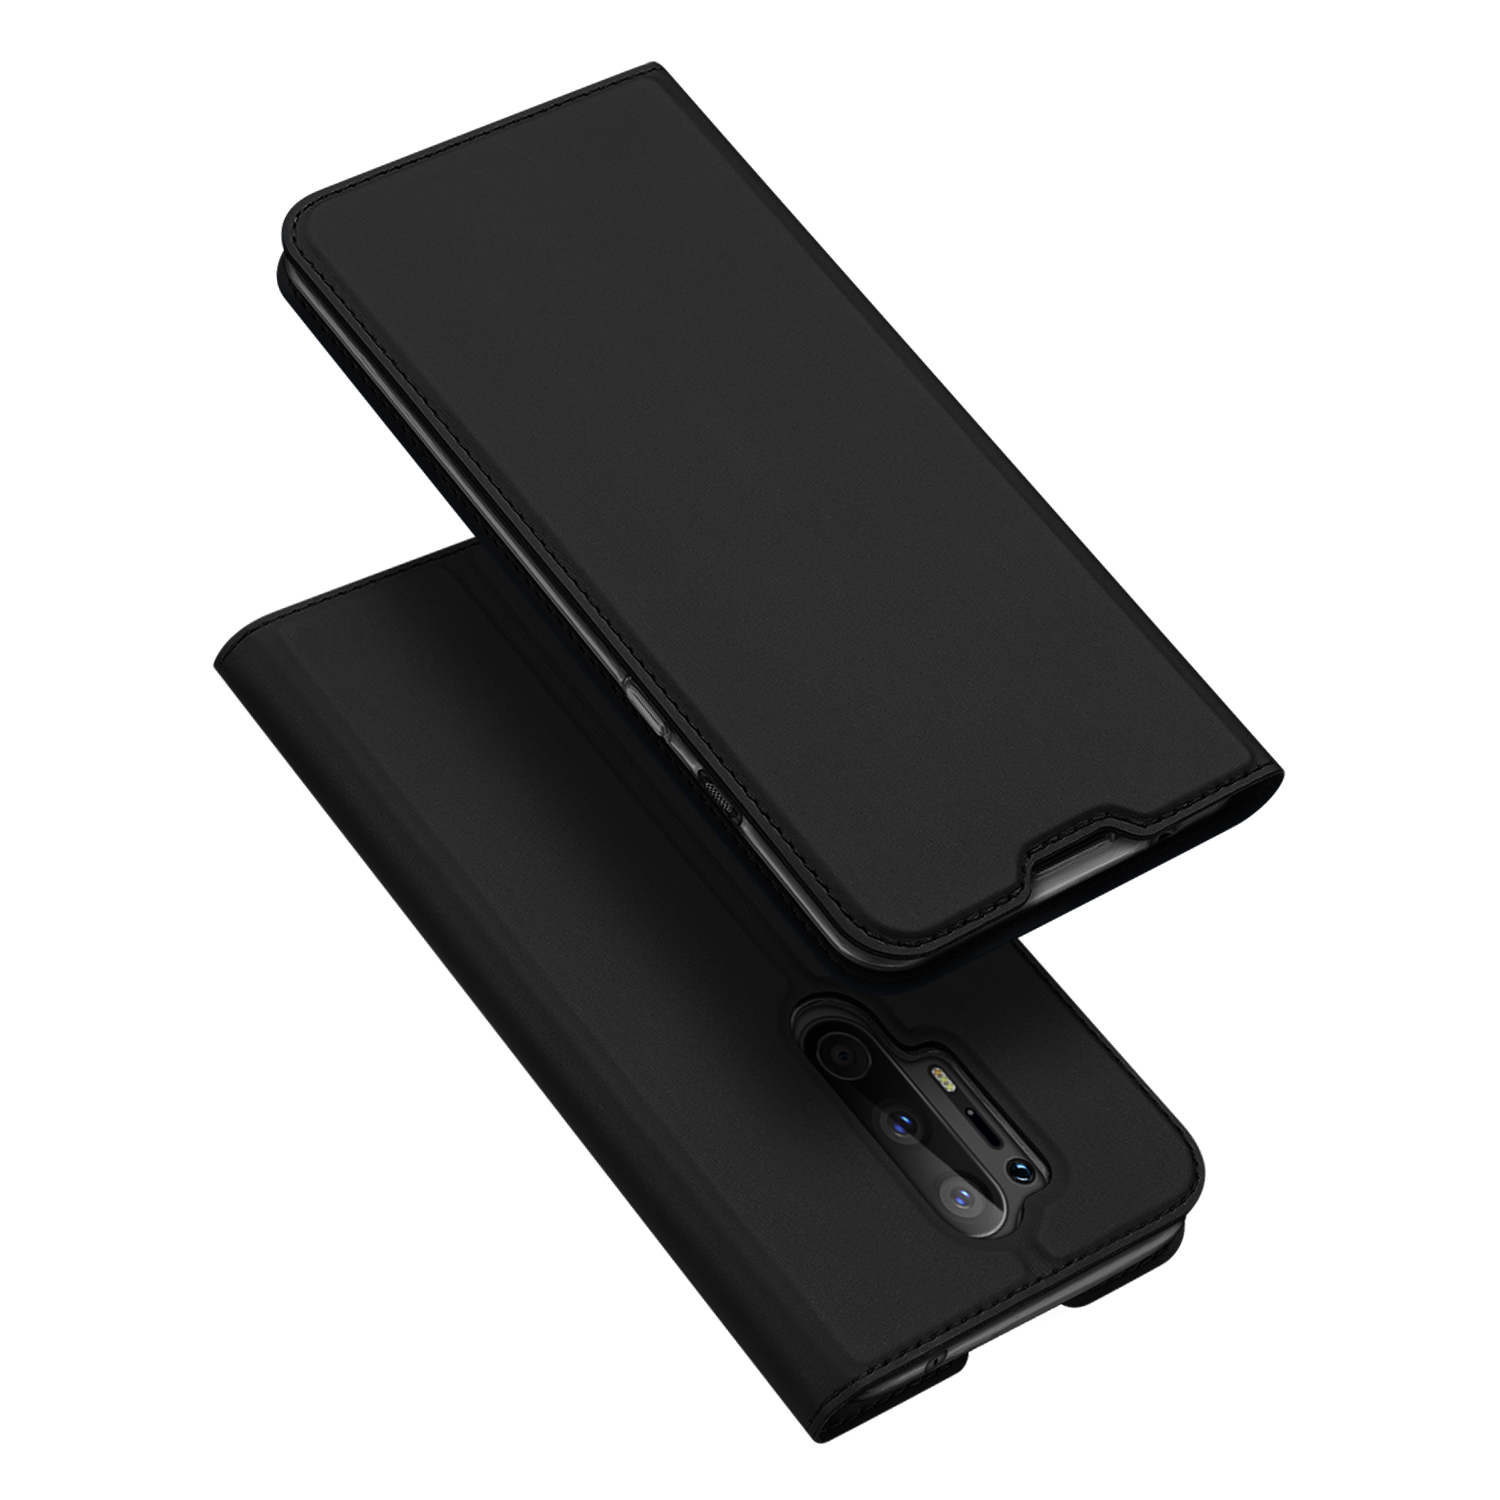 DUX DUCIS For One plus 8 pro Leather Mobile Phone Cover Magnetic Protective Case Bracket with Cards Slot black